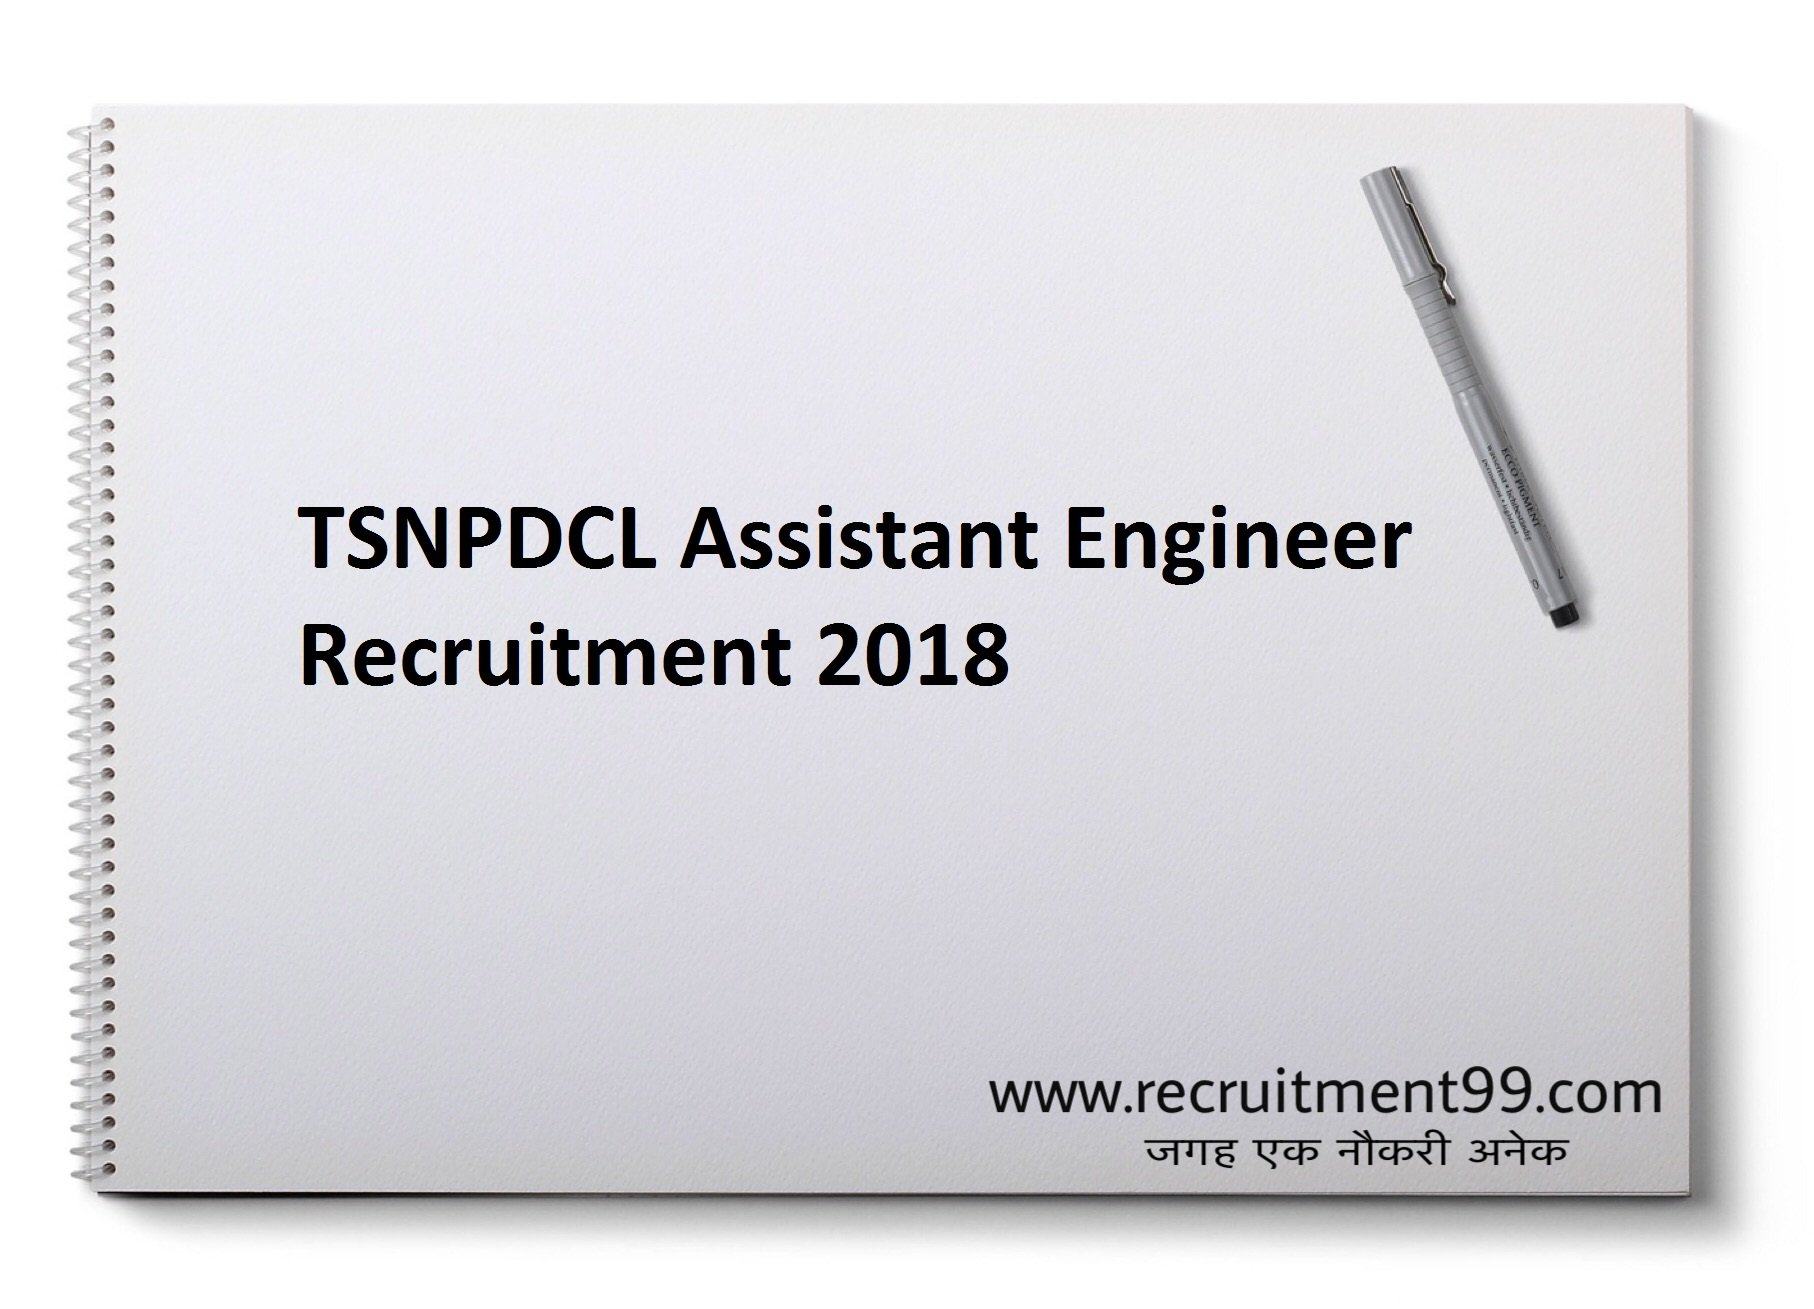 TSNPDCL Assistant Engineer Recruitment Hall Ticket Result 2018